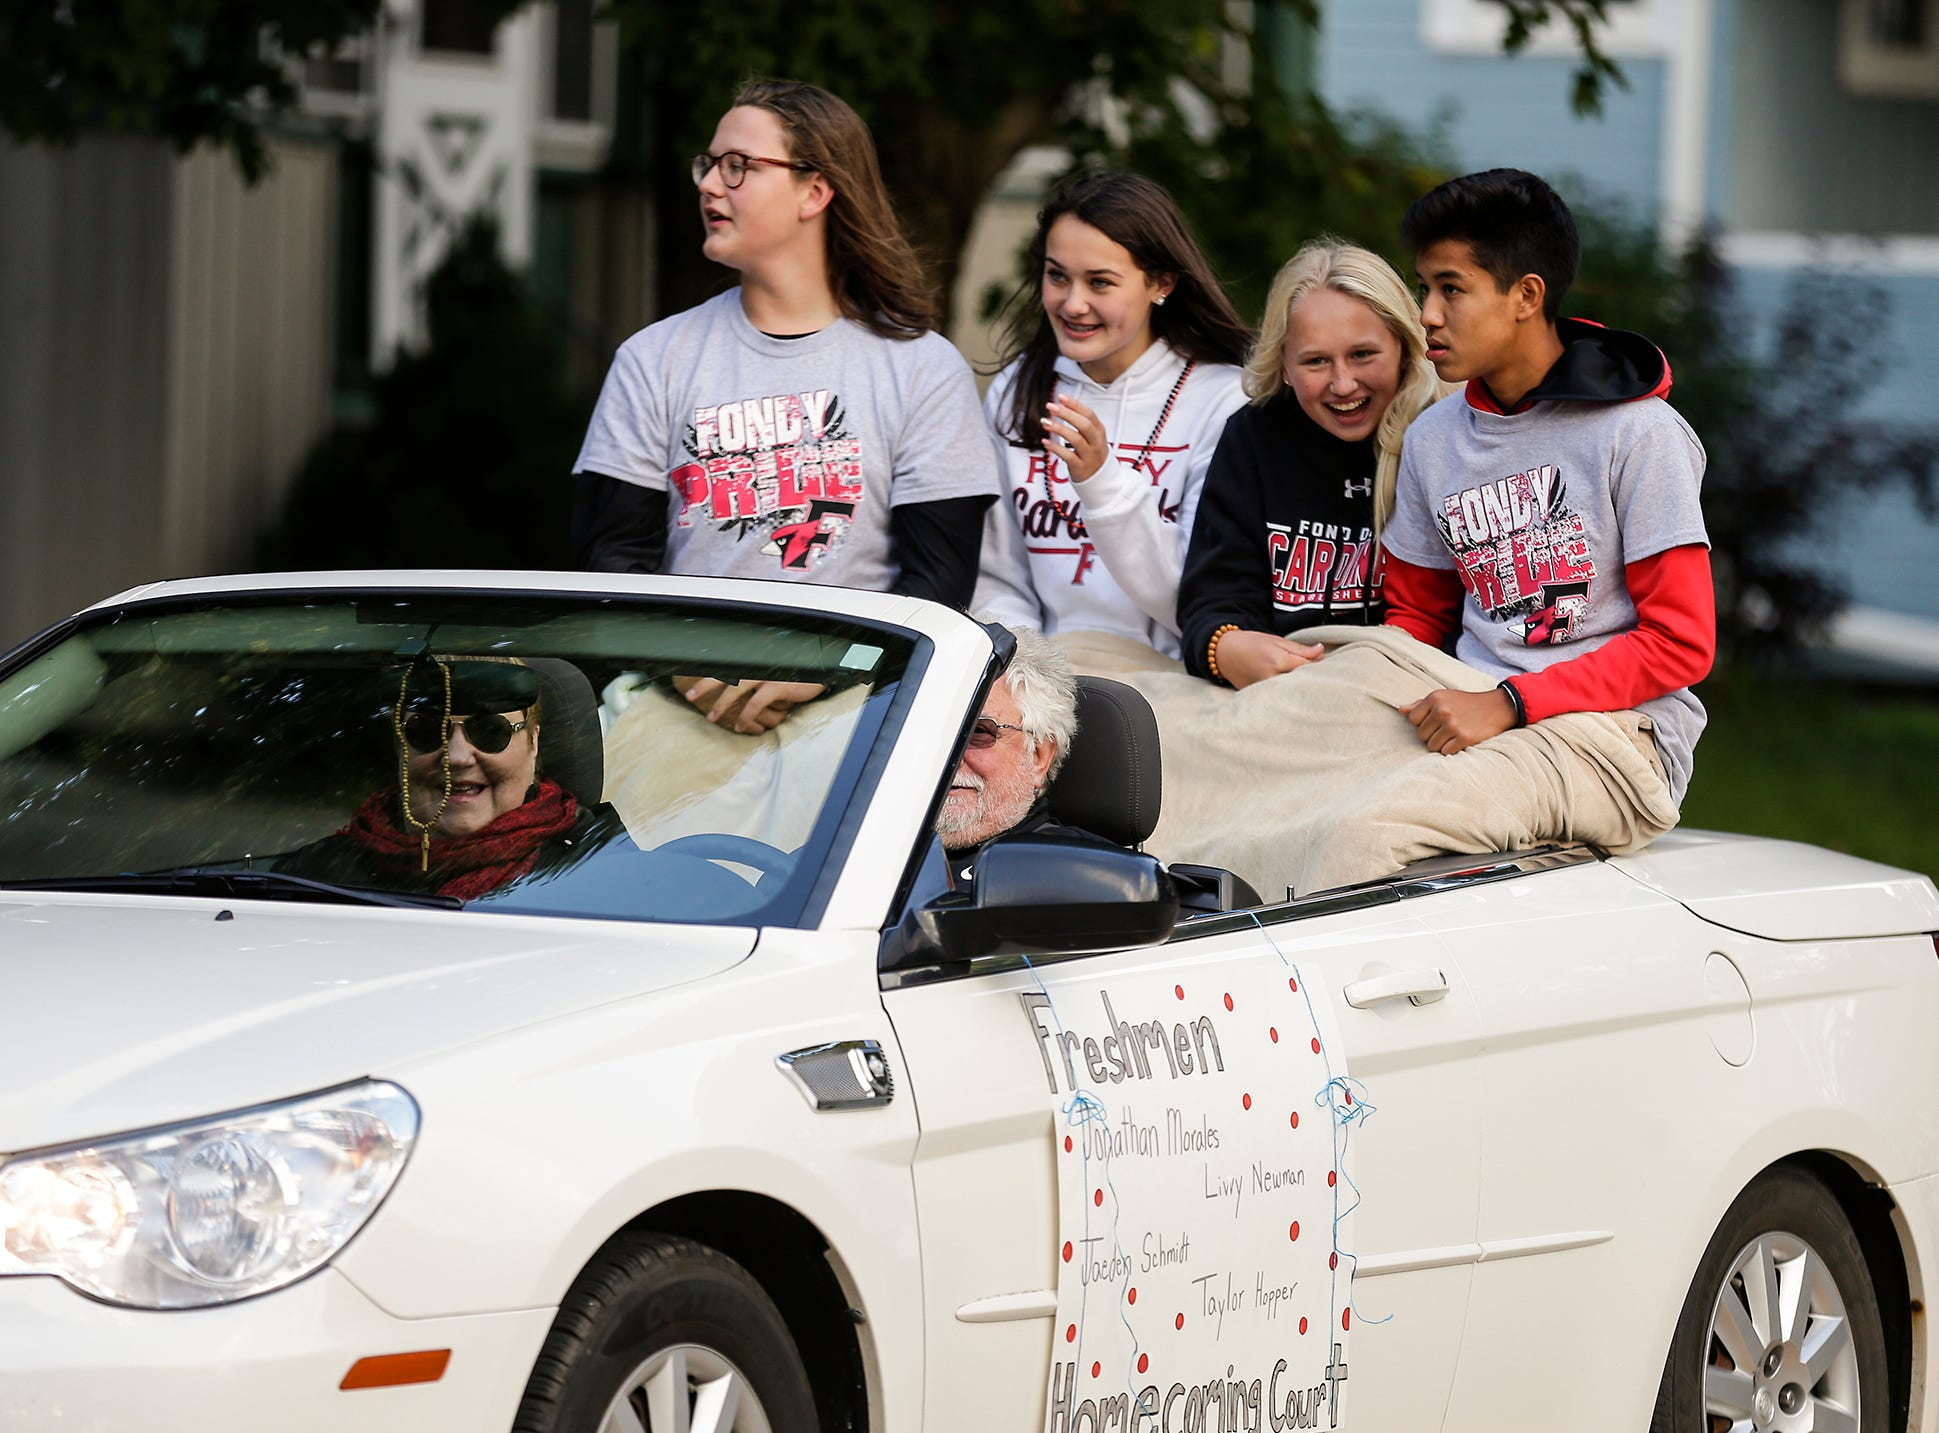 Fond du Lac High School freshman homecoming court members ride in the Fond du Lac High School football homecoming parade Friday, Sept. 28, 2018, which went down portions of Martin Avenue and Ninth Street in Fond du Lac, Wisconsin.